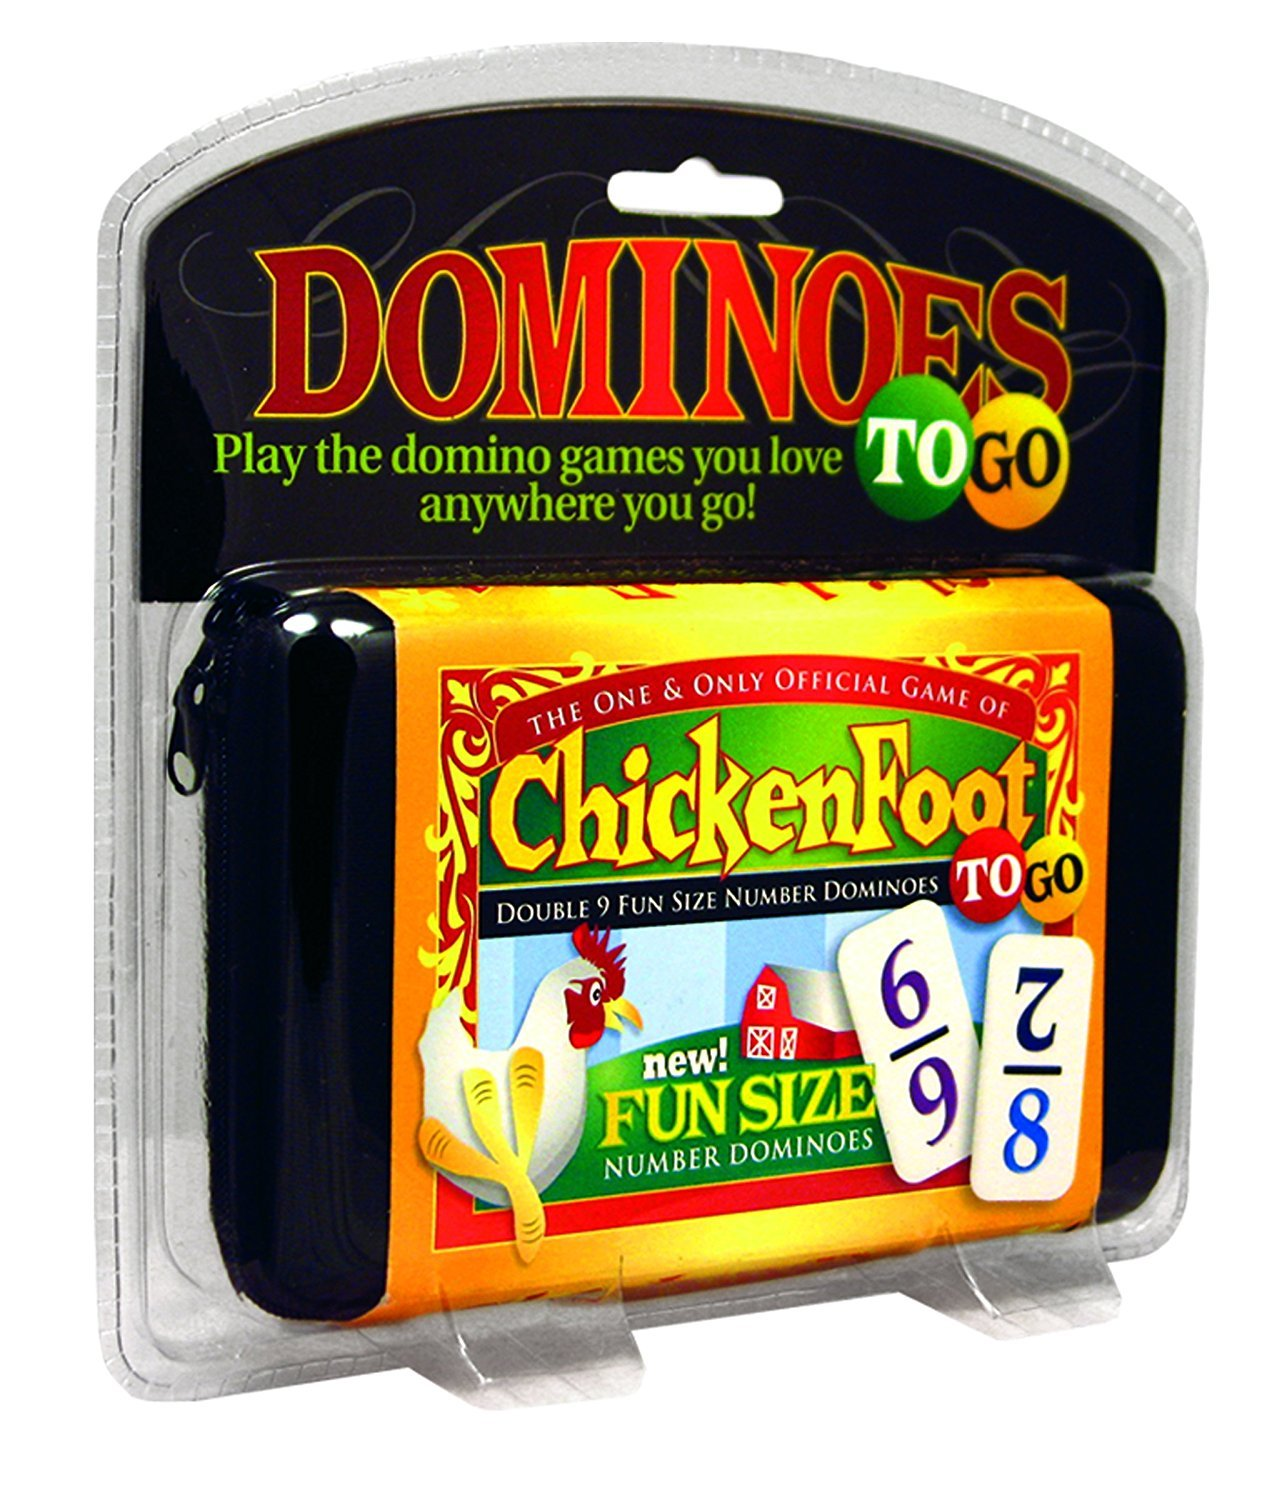 Classic Chicken Foot Dominoes To Go